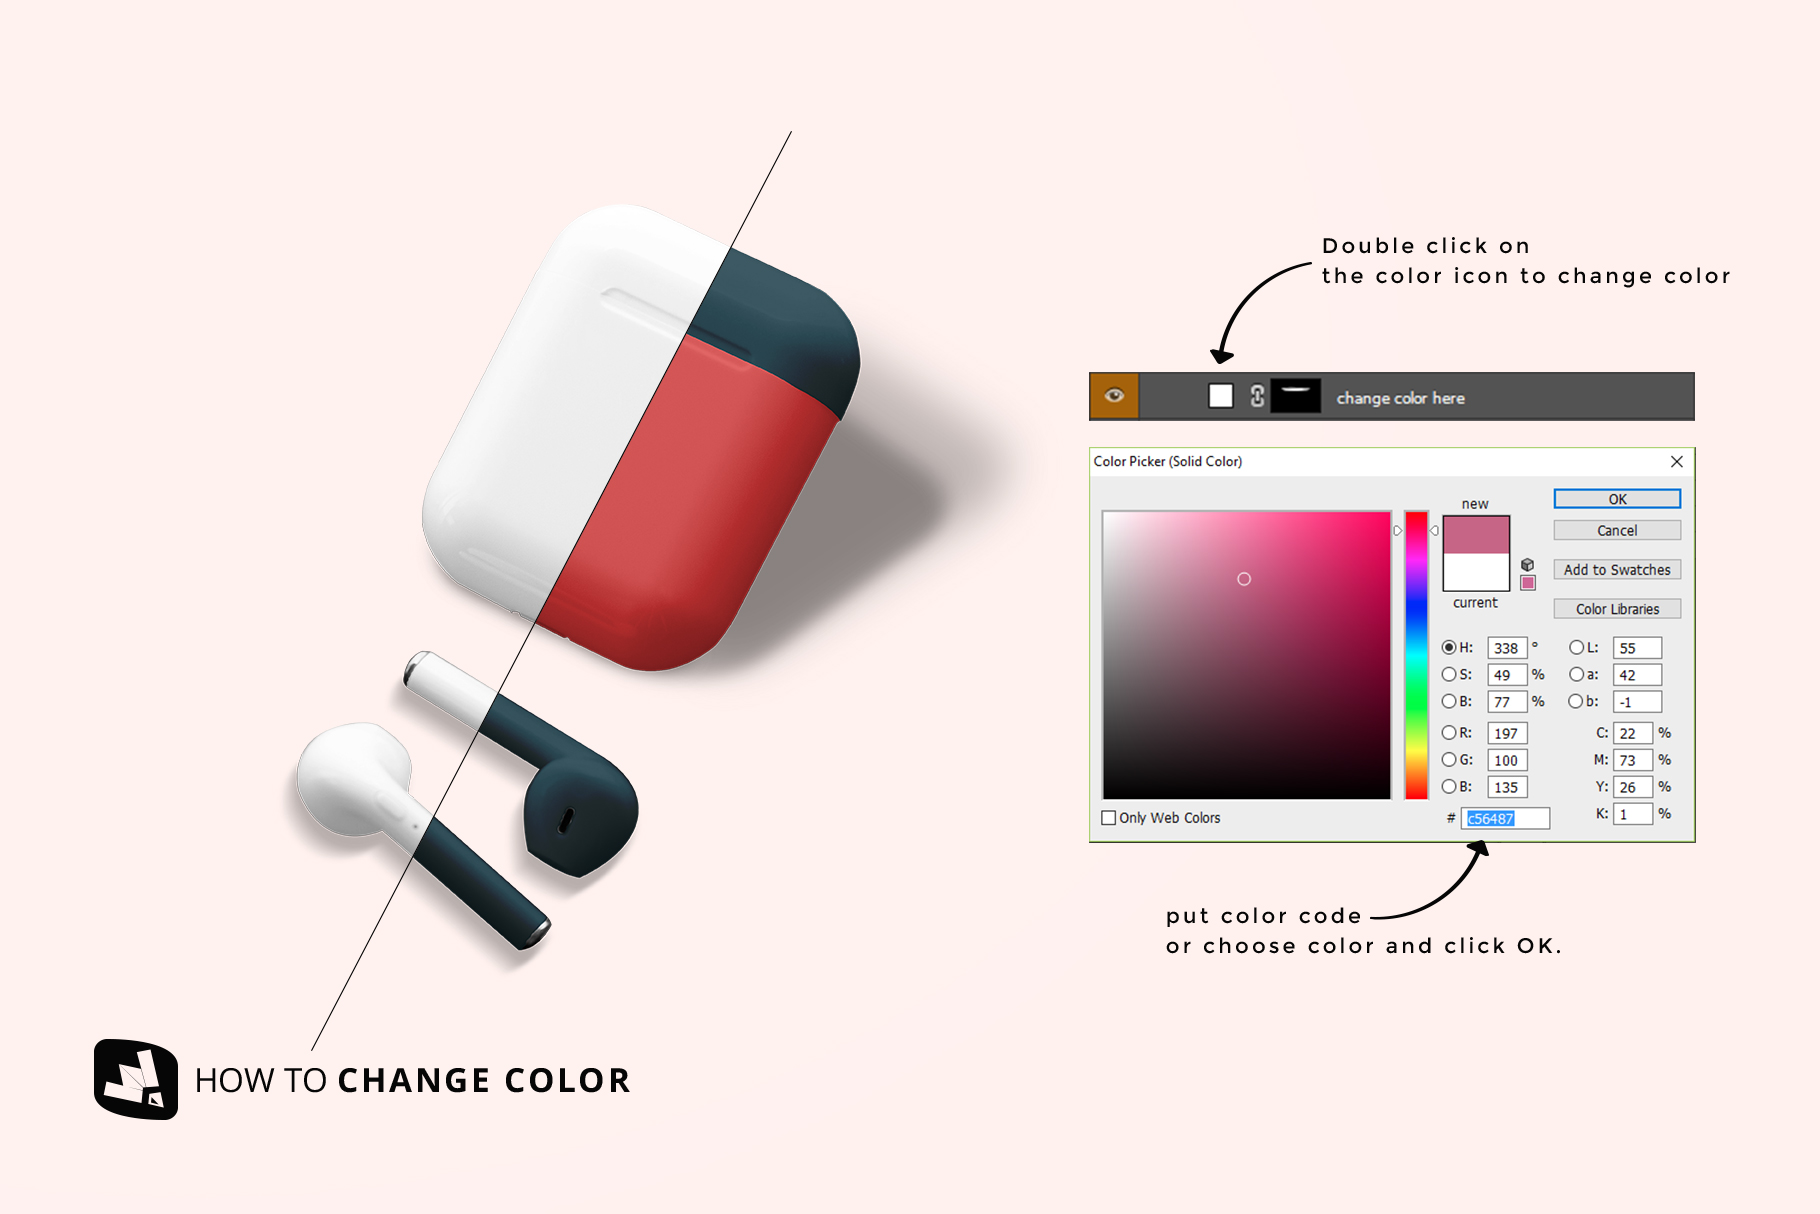 how to change color of the airpod case mockup